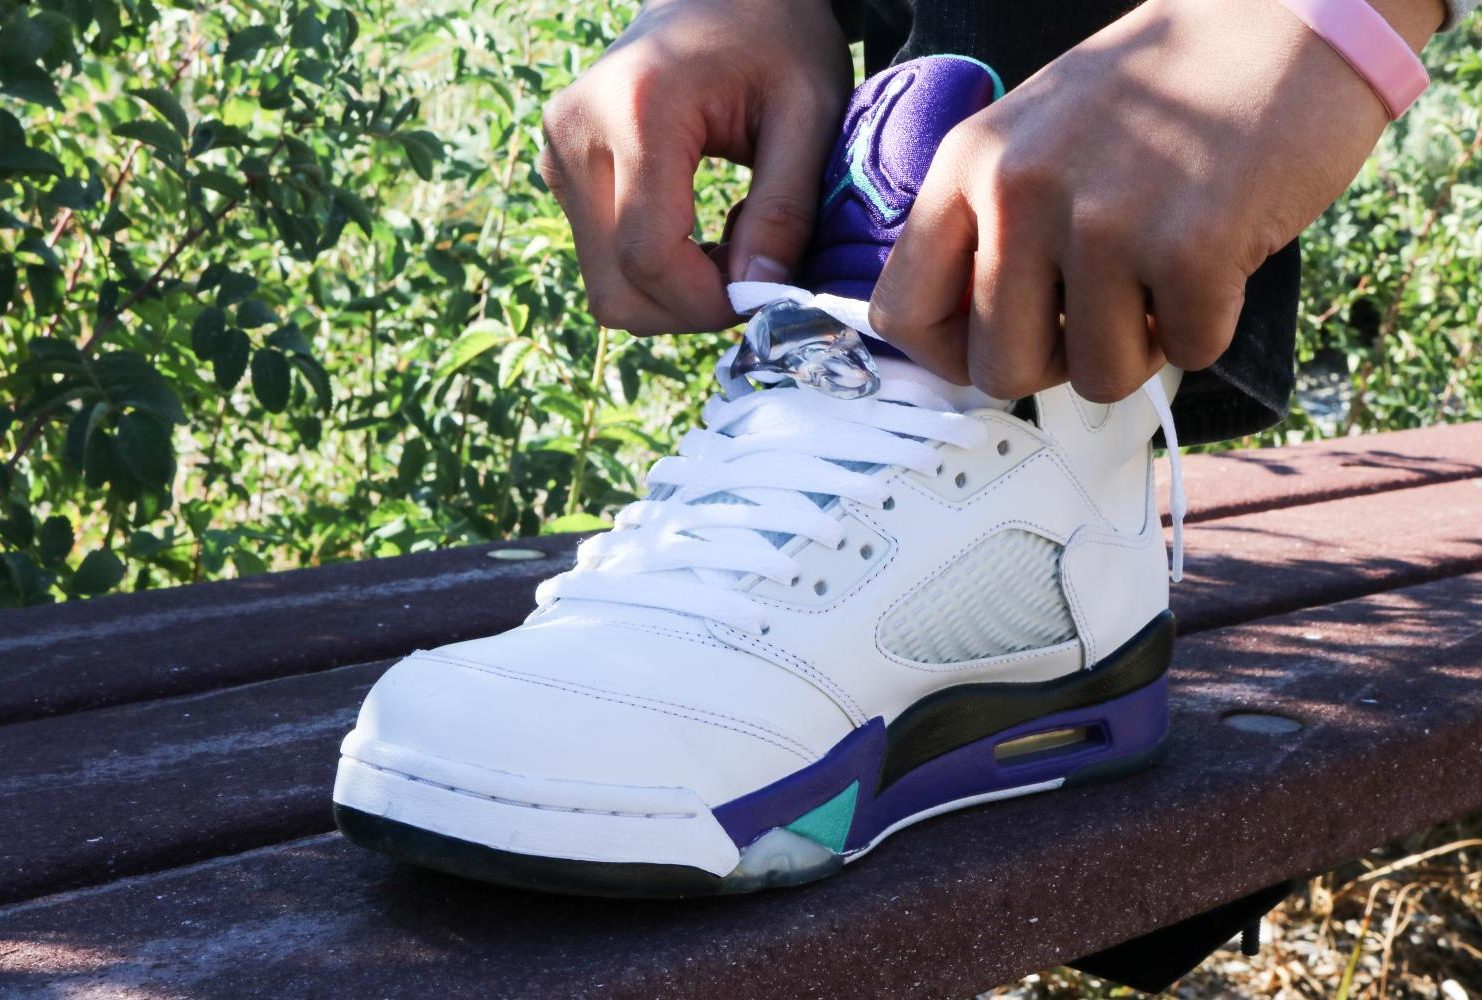 """""""I camped out at six in the morning at the mall to get Fire Red 5s."""" – Joey Ngyun   Automotive Technology   Air Jordan 5 Retro """"Grape"""" (Photo by Felix Oliveros)"""